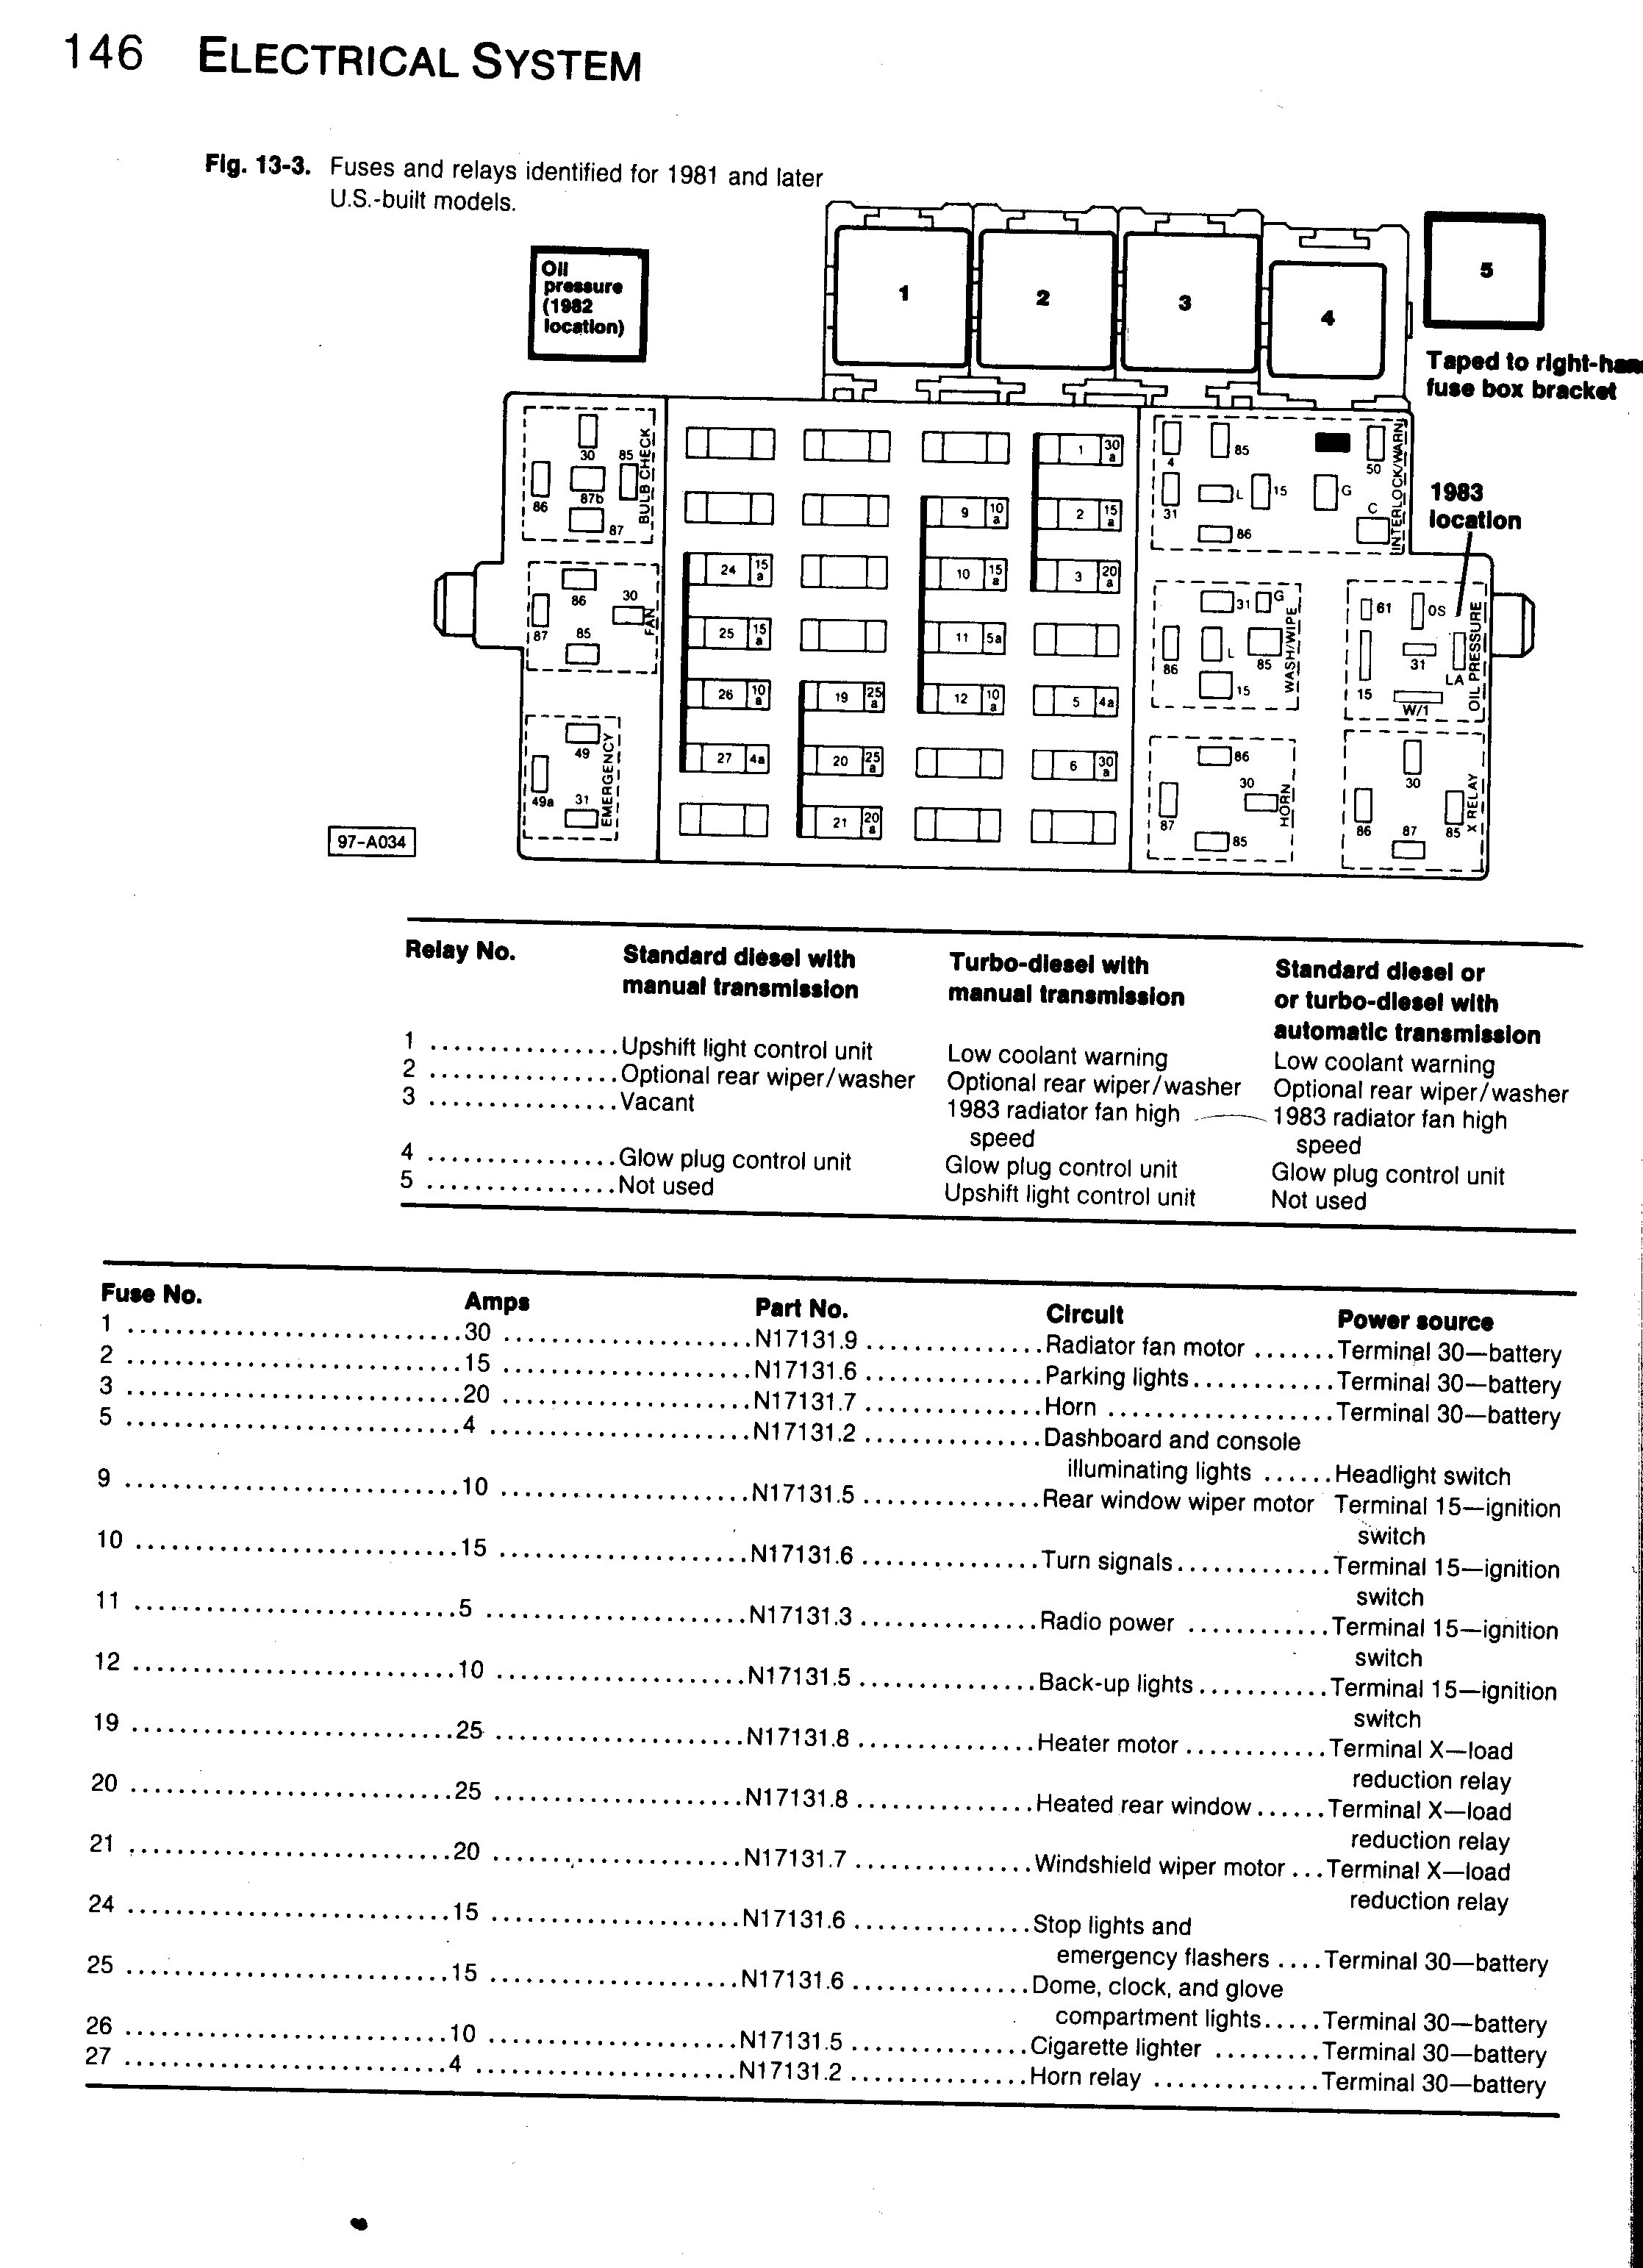 Audi A4 B5 Fuse Box Diagram Worksheet And Wiring S4 1996 Schematics Rh Sylviaexpress Com 2004 1999